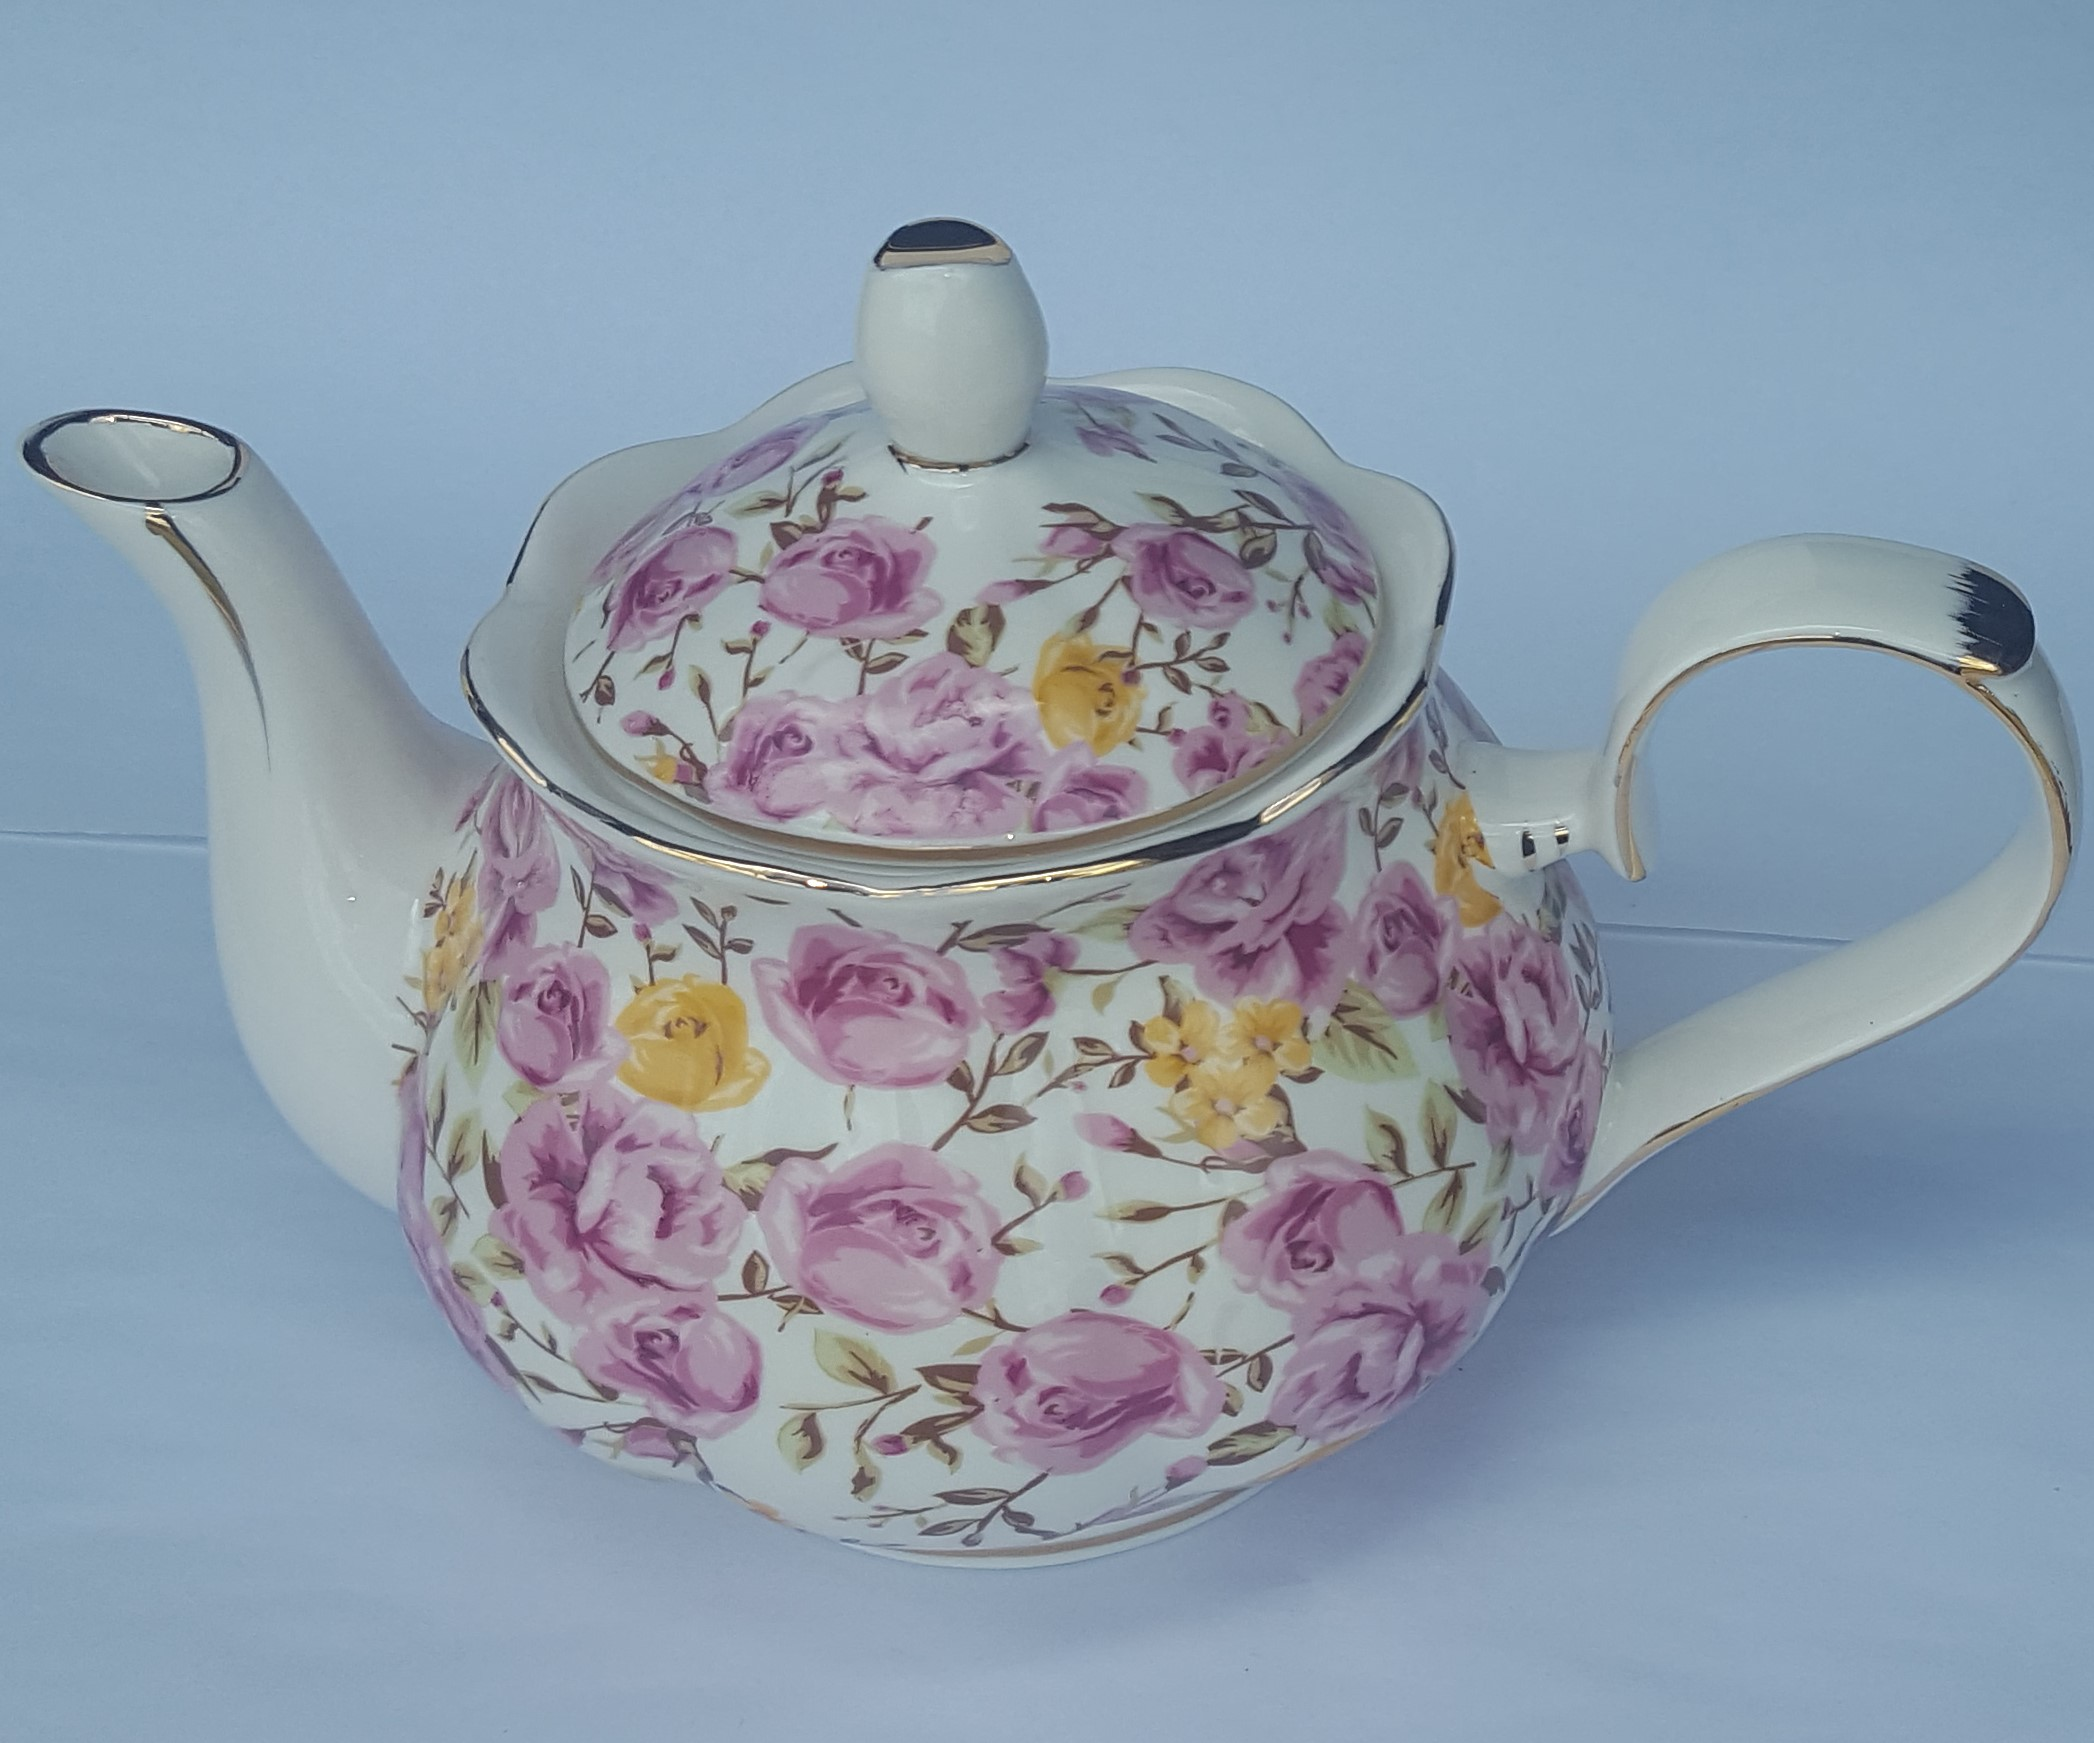 Candy Rose Bloom 4 cup teapot